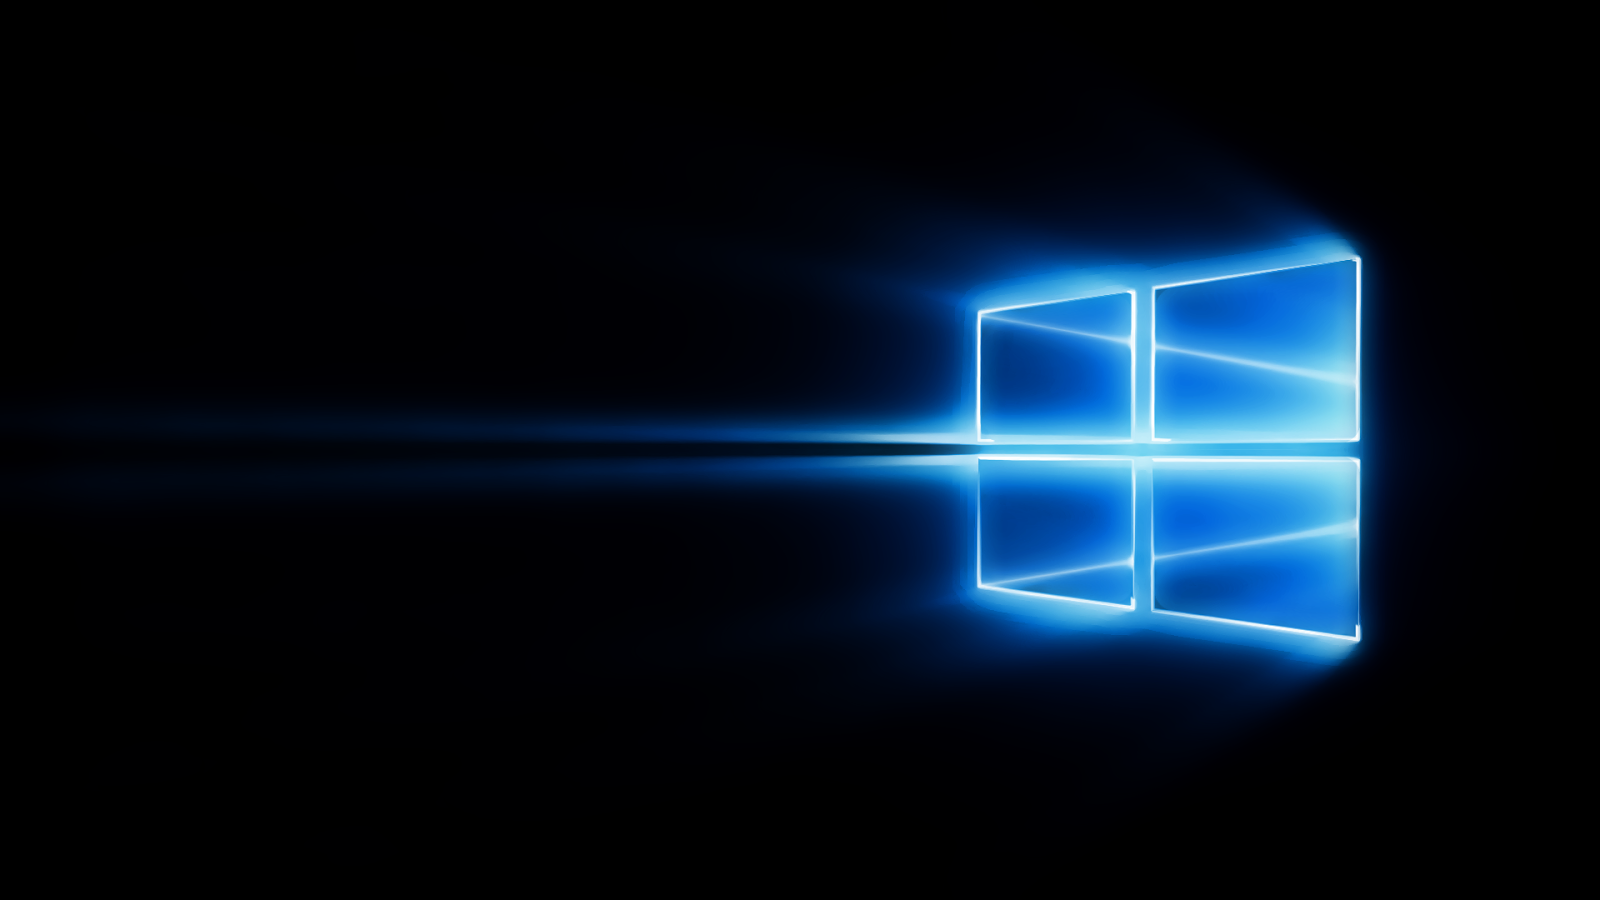 Windows 10 Dark Wallpapers Wallpaper Cave